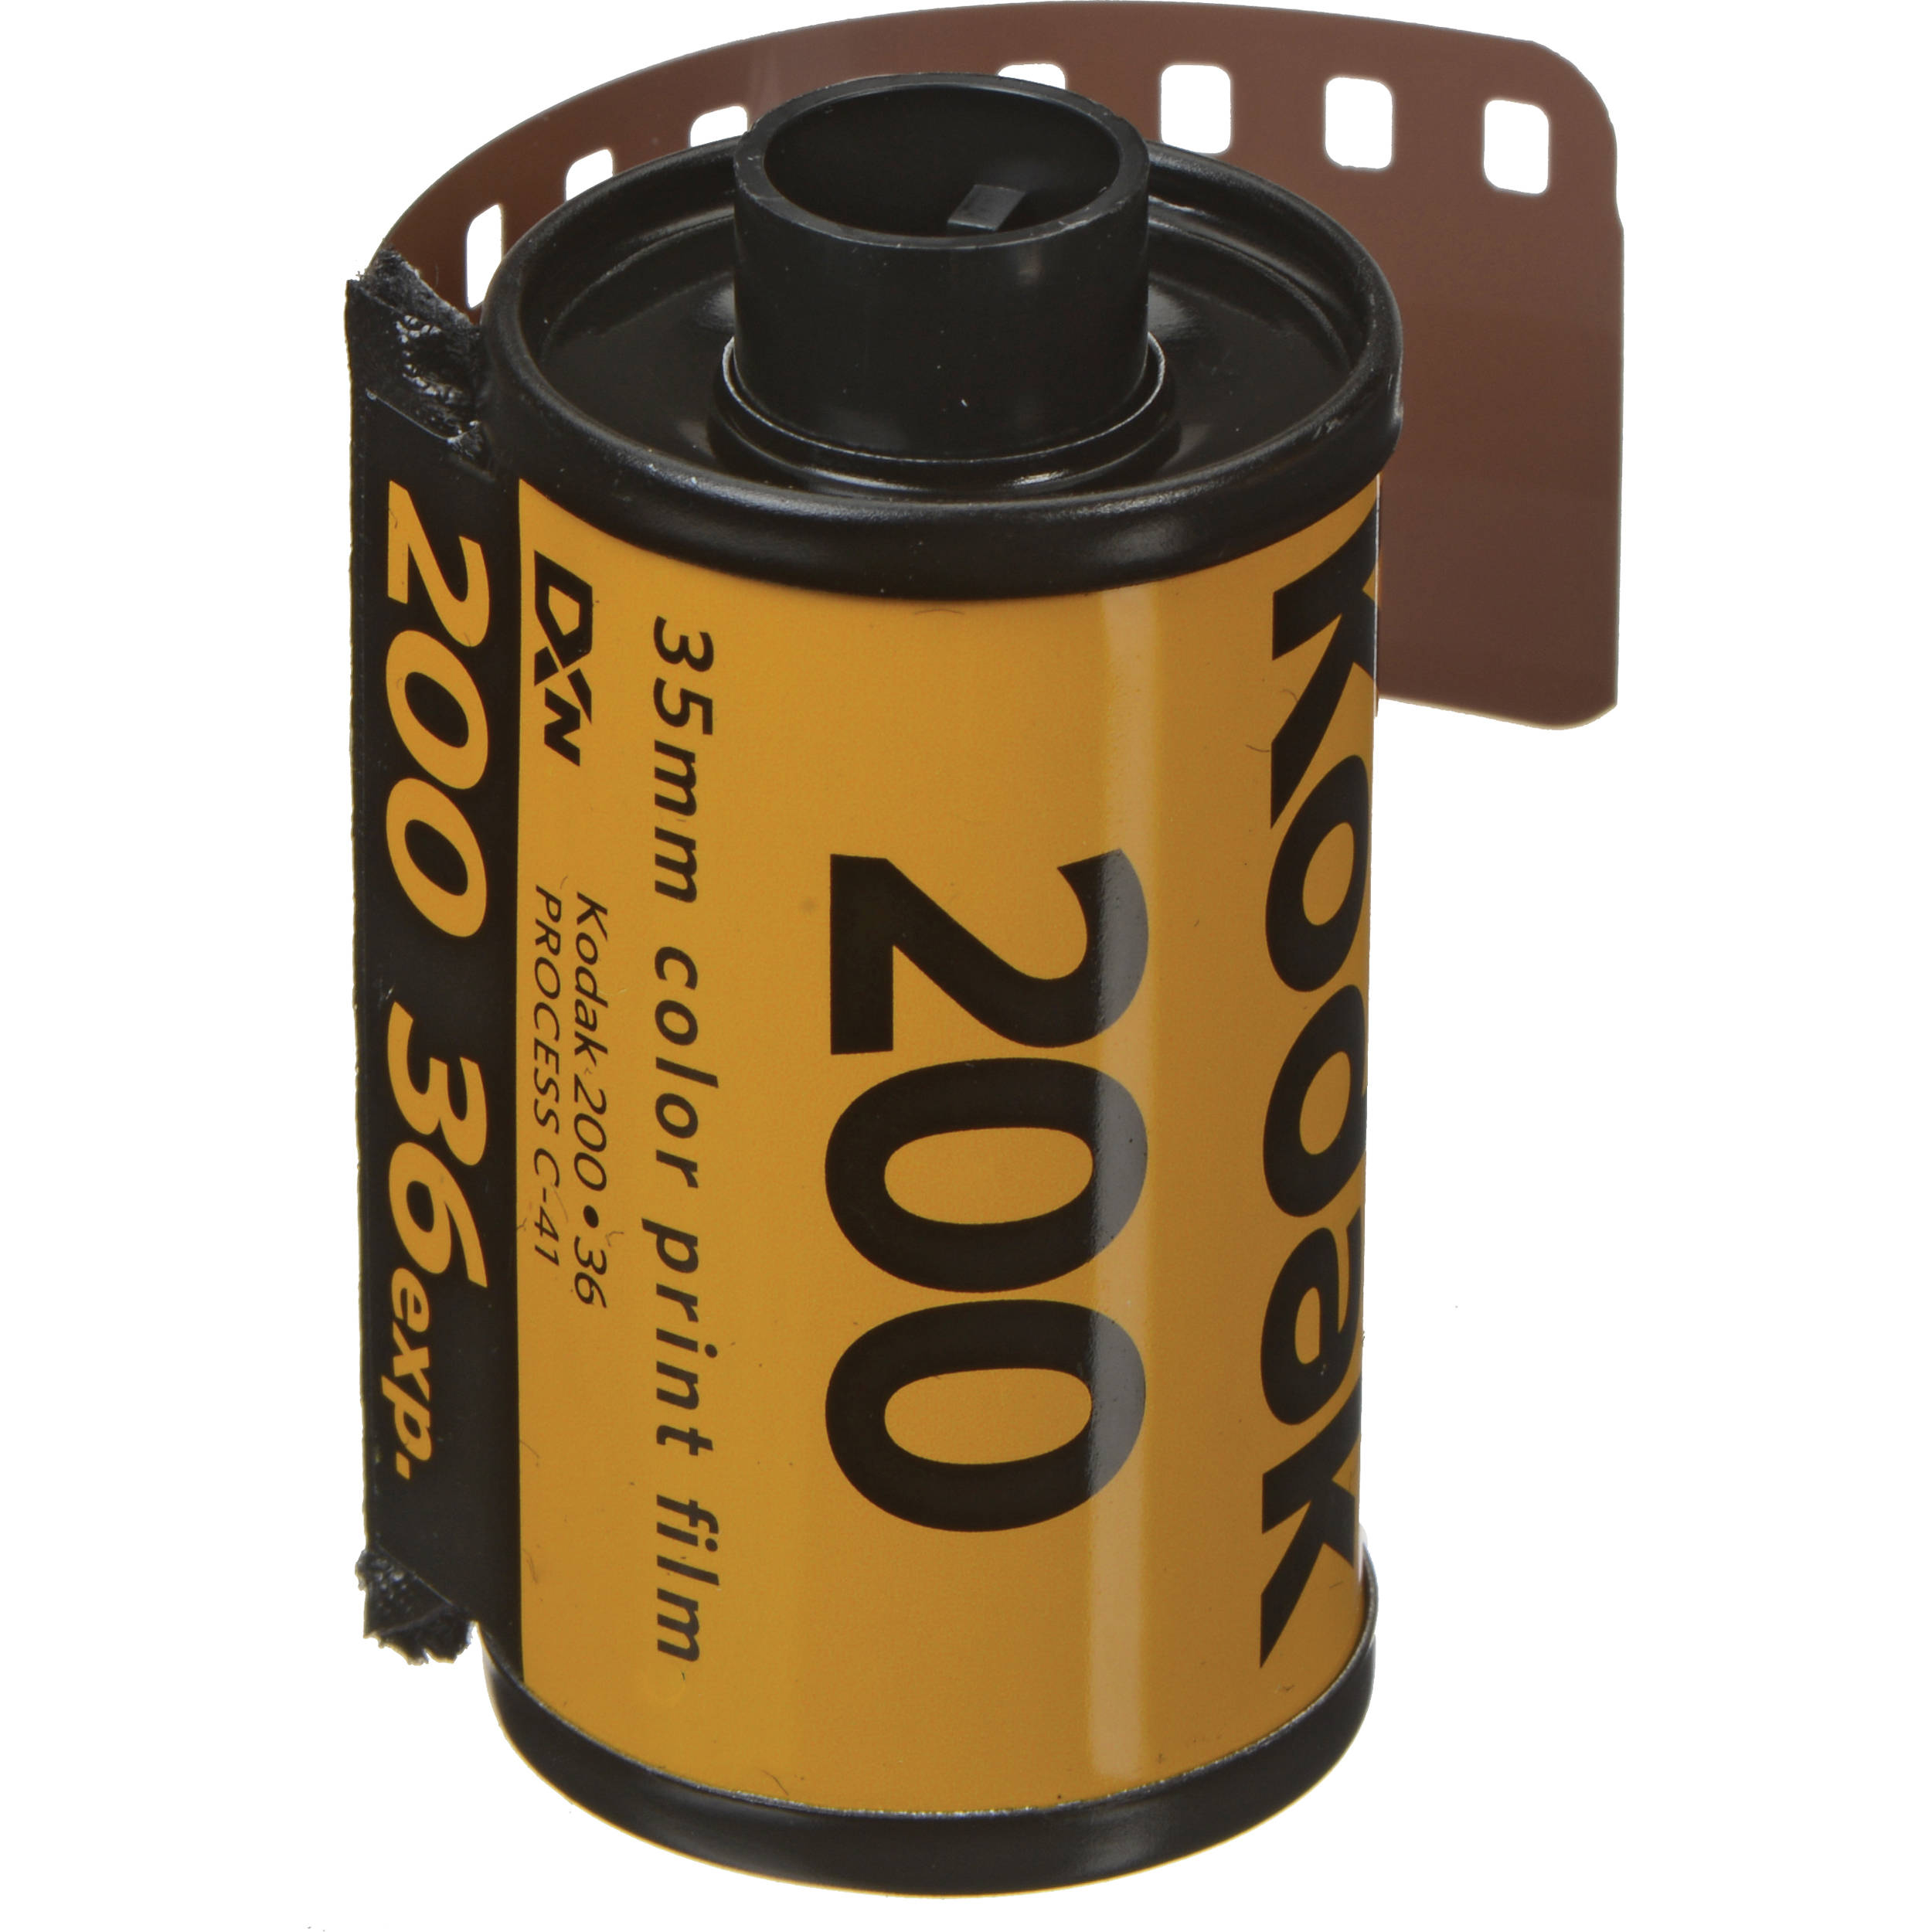 Kodak GOLD 200 Color Negative Film 6033997 B&H Photo Video